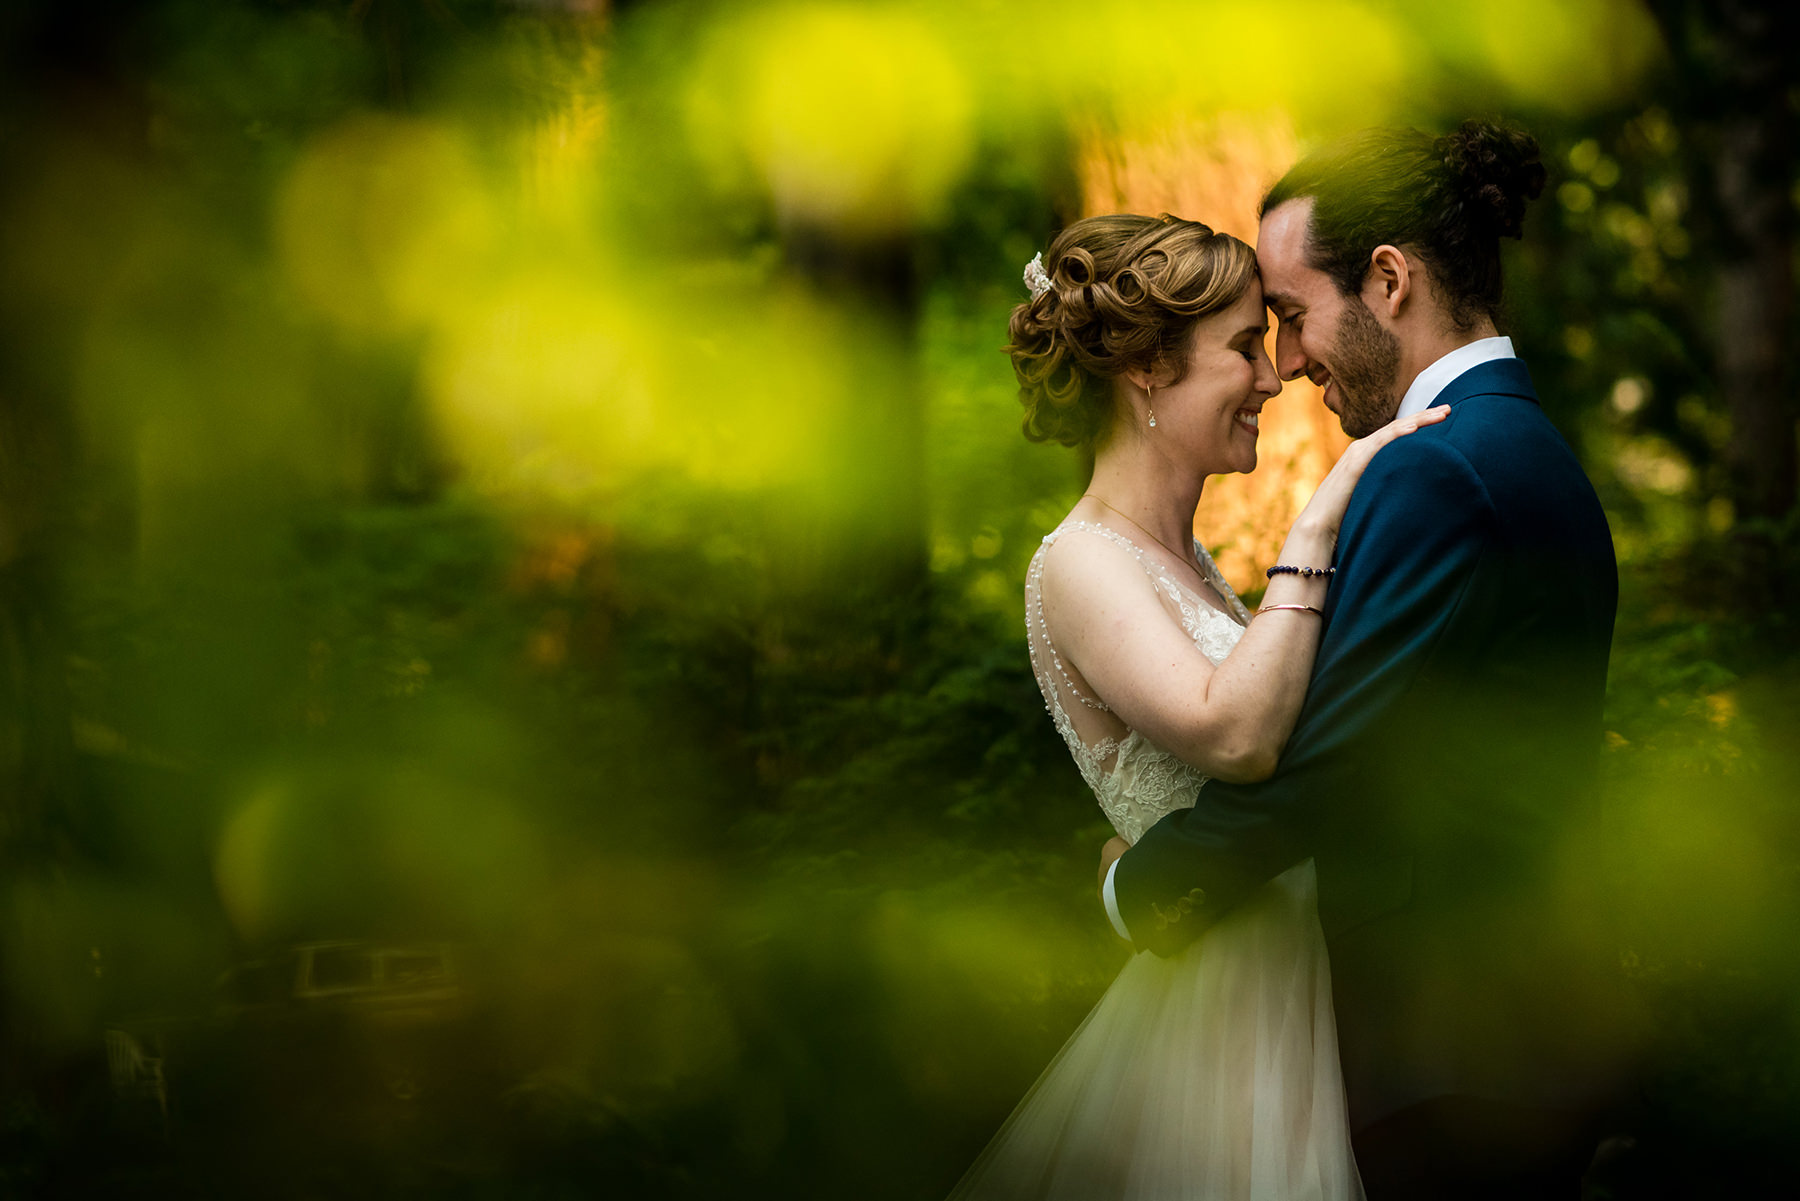 creative forests wedding photo